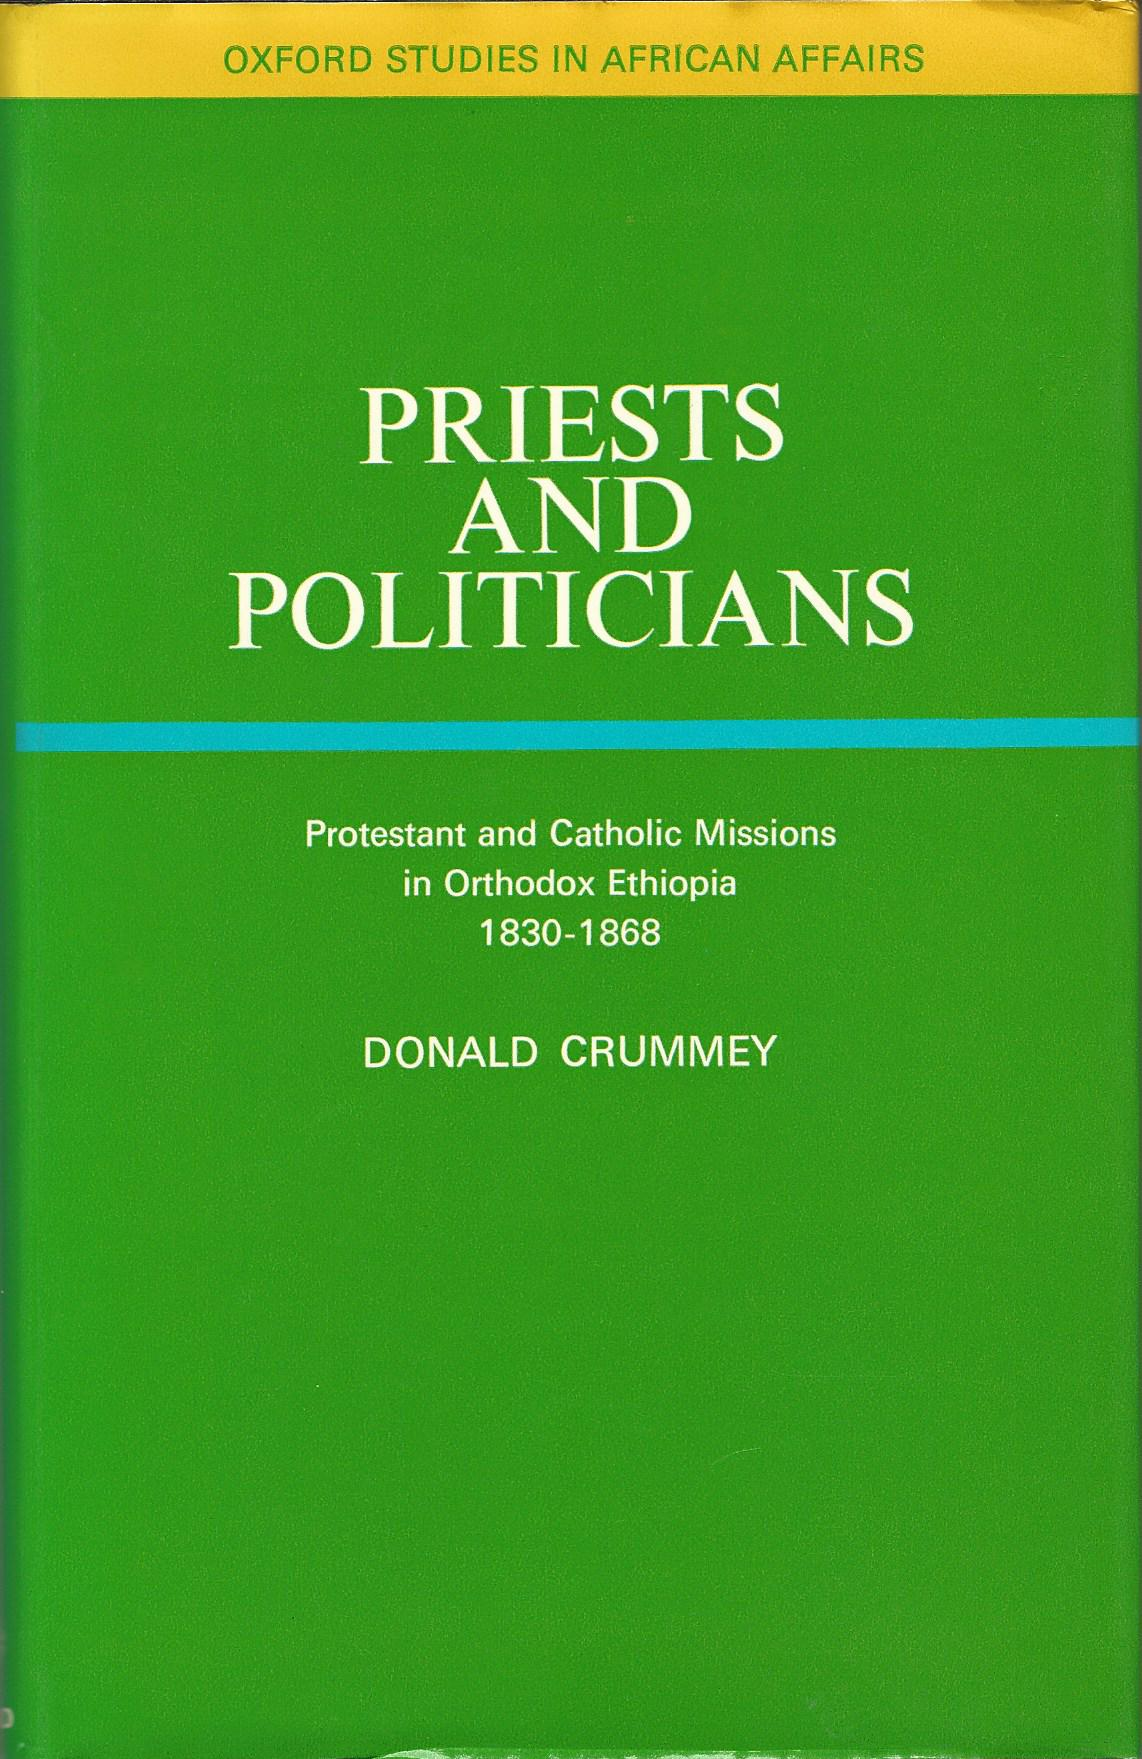 Image for Priests and Politicians: Protestants and Catholic Missions in Orthodox Ethiopia, 1830-68 (Study in African Affairs)